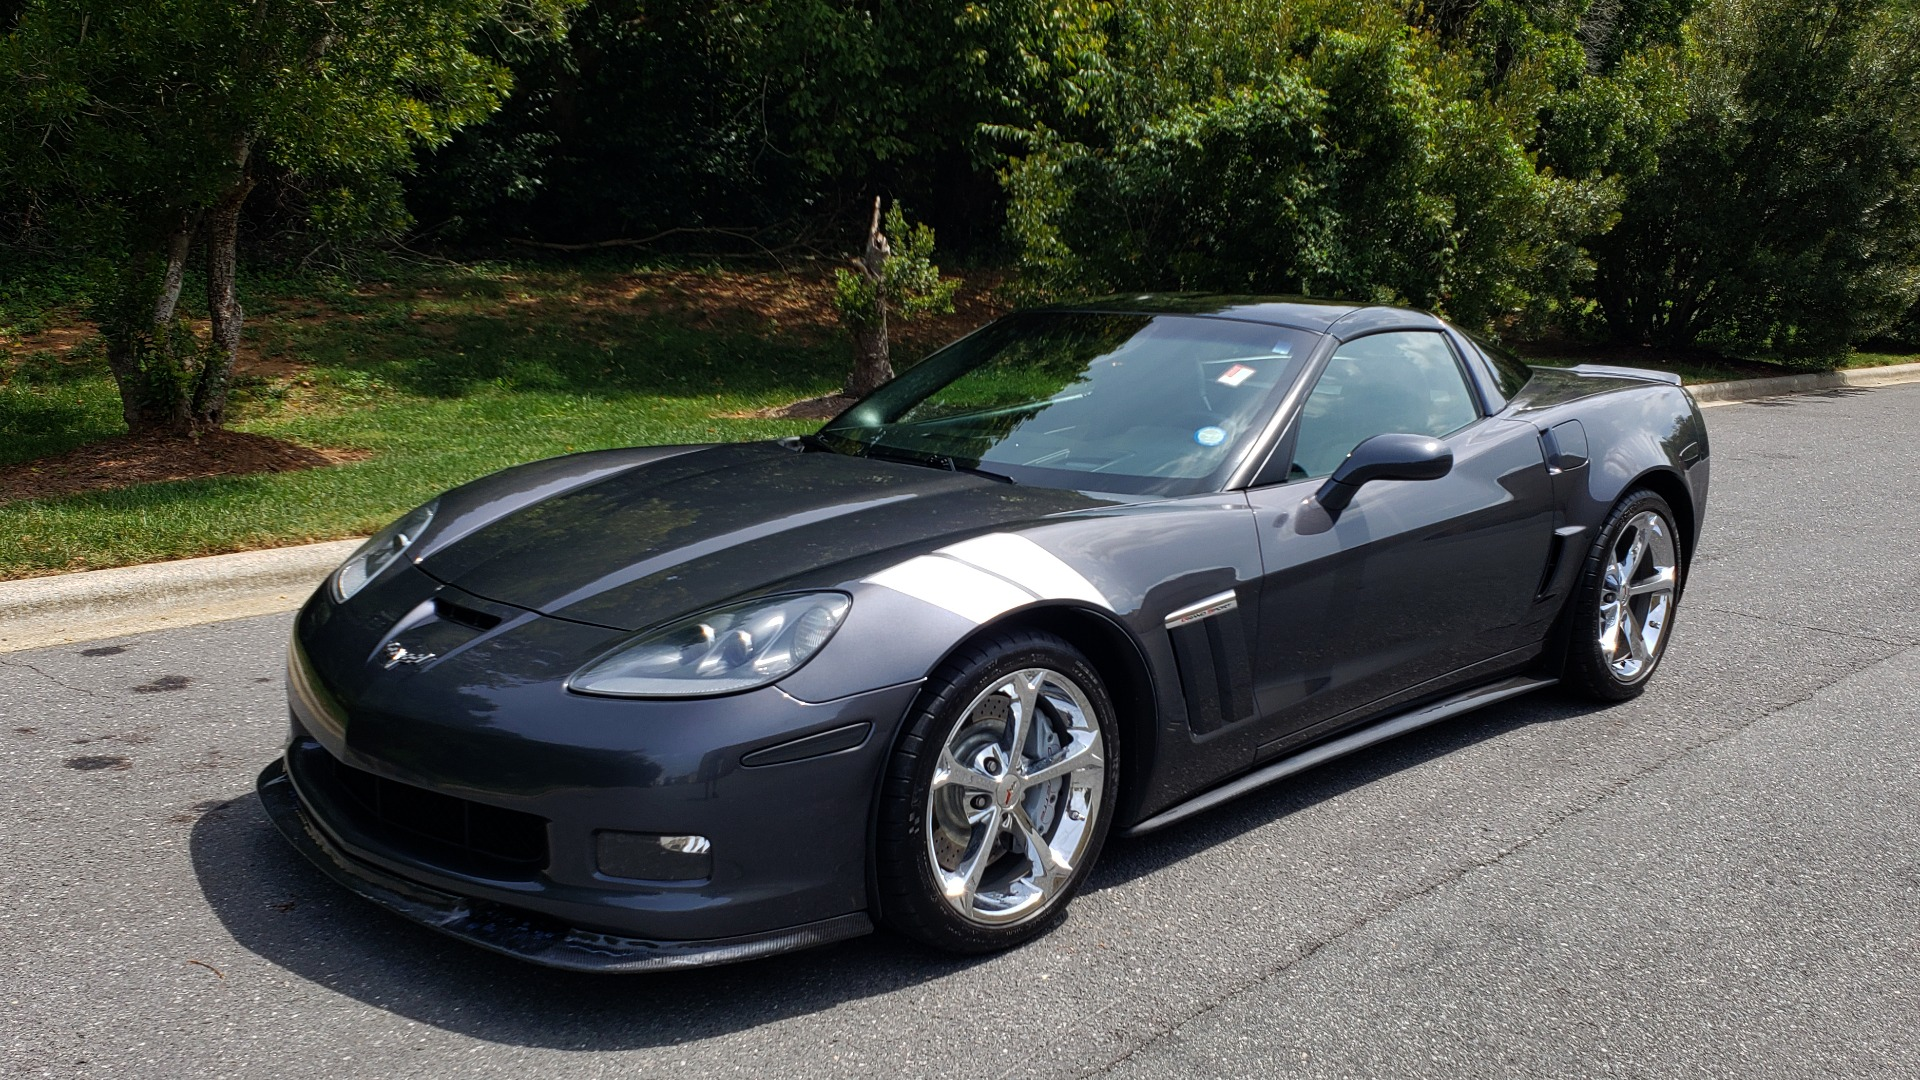 Used 2010 Chevrolet CORVETTE Z16 GRAND SPORT 3LT / HUD / 6.2L V8 / 6-SPD AUTO / NPP EXH for sale Sold at Formula Imports in Charlotte NC 28227 6